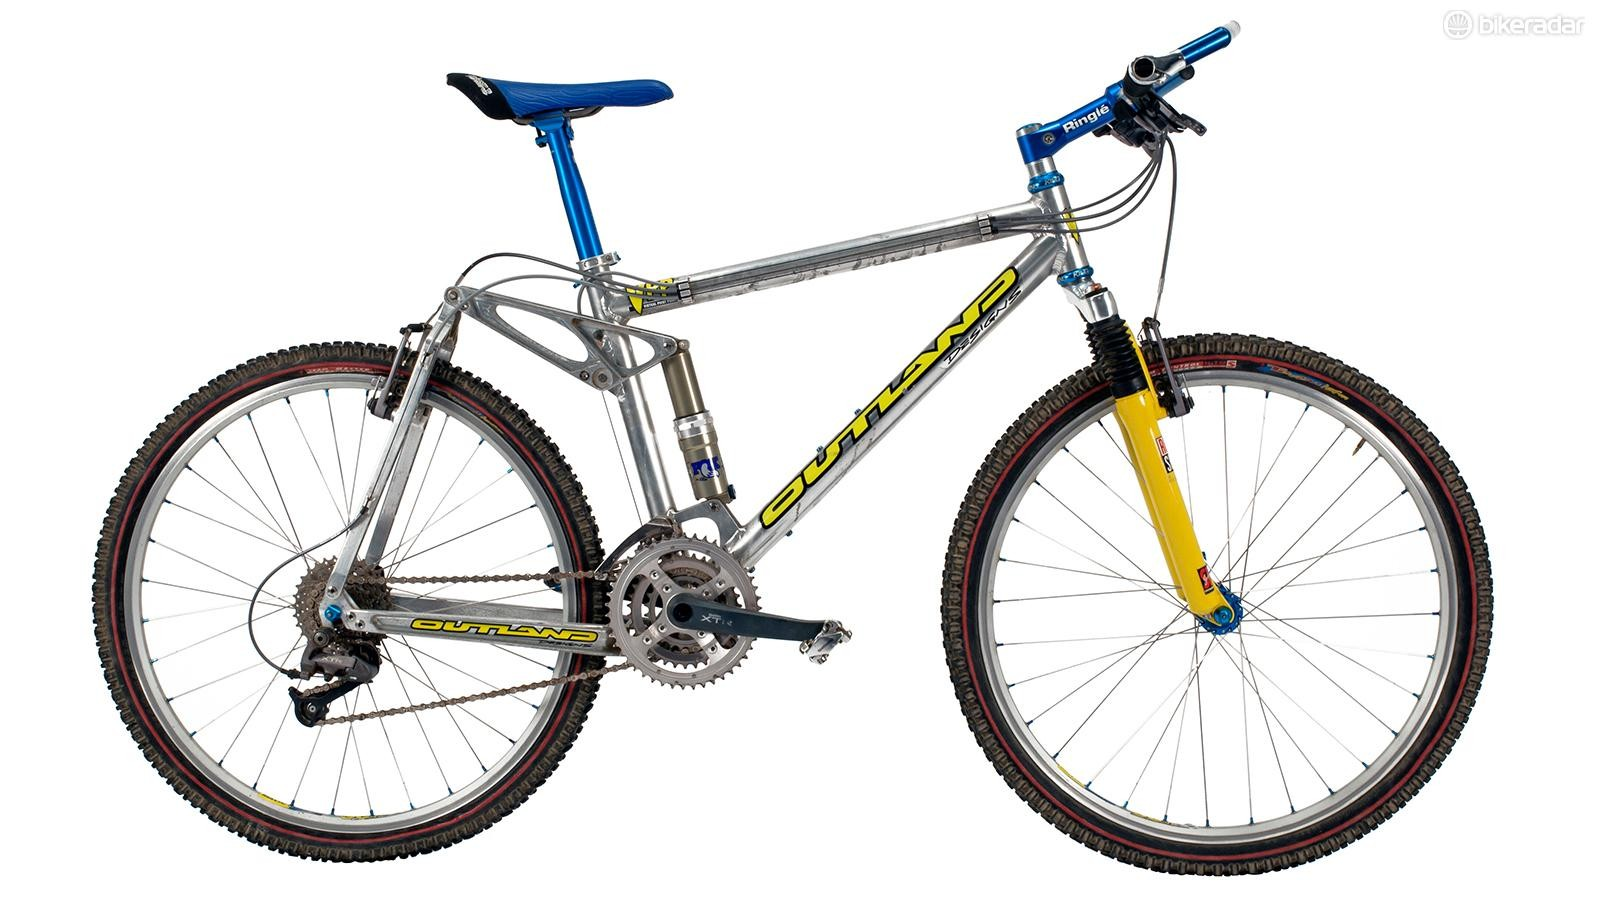 This mid-'90s full suspension was a decade ahead of its time. Santa Cruz would buy the rights to the VPP suspension design in 1999 and employ it to great success across its mountain bike line